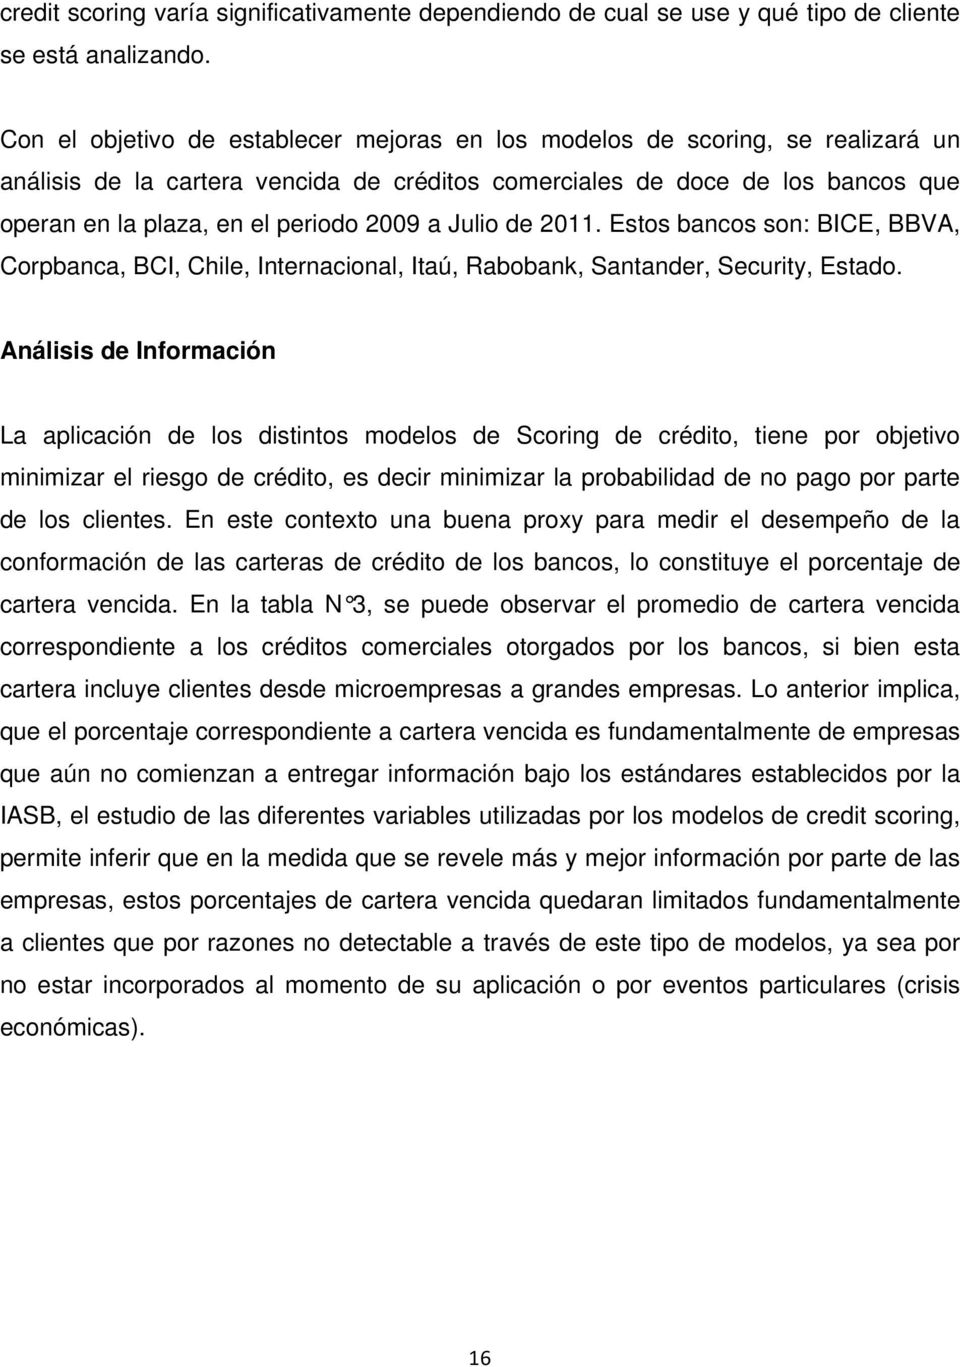 2009 a Julio de 2011. Estos bancos son: BICE, BBVA, Corpbanca, BCI, Chile, Internacional, Itaú, Rabobank, Santander, Security, Estado.